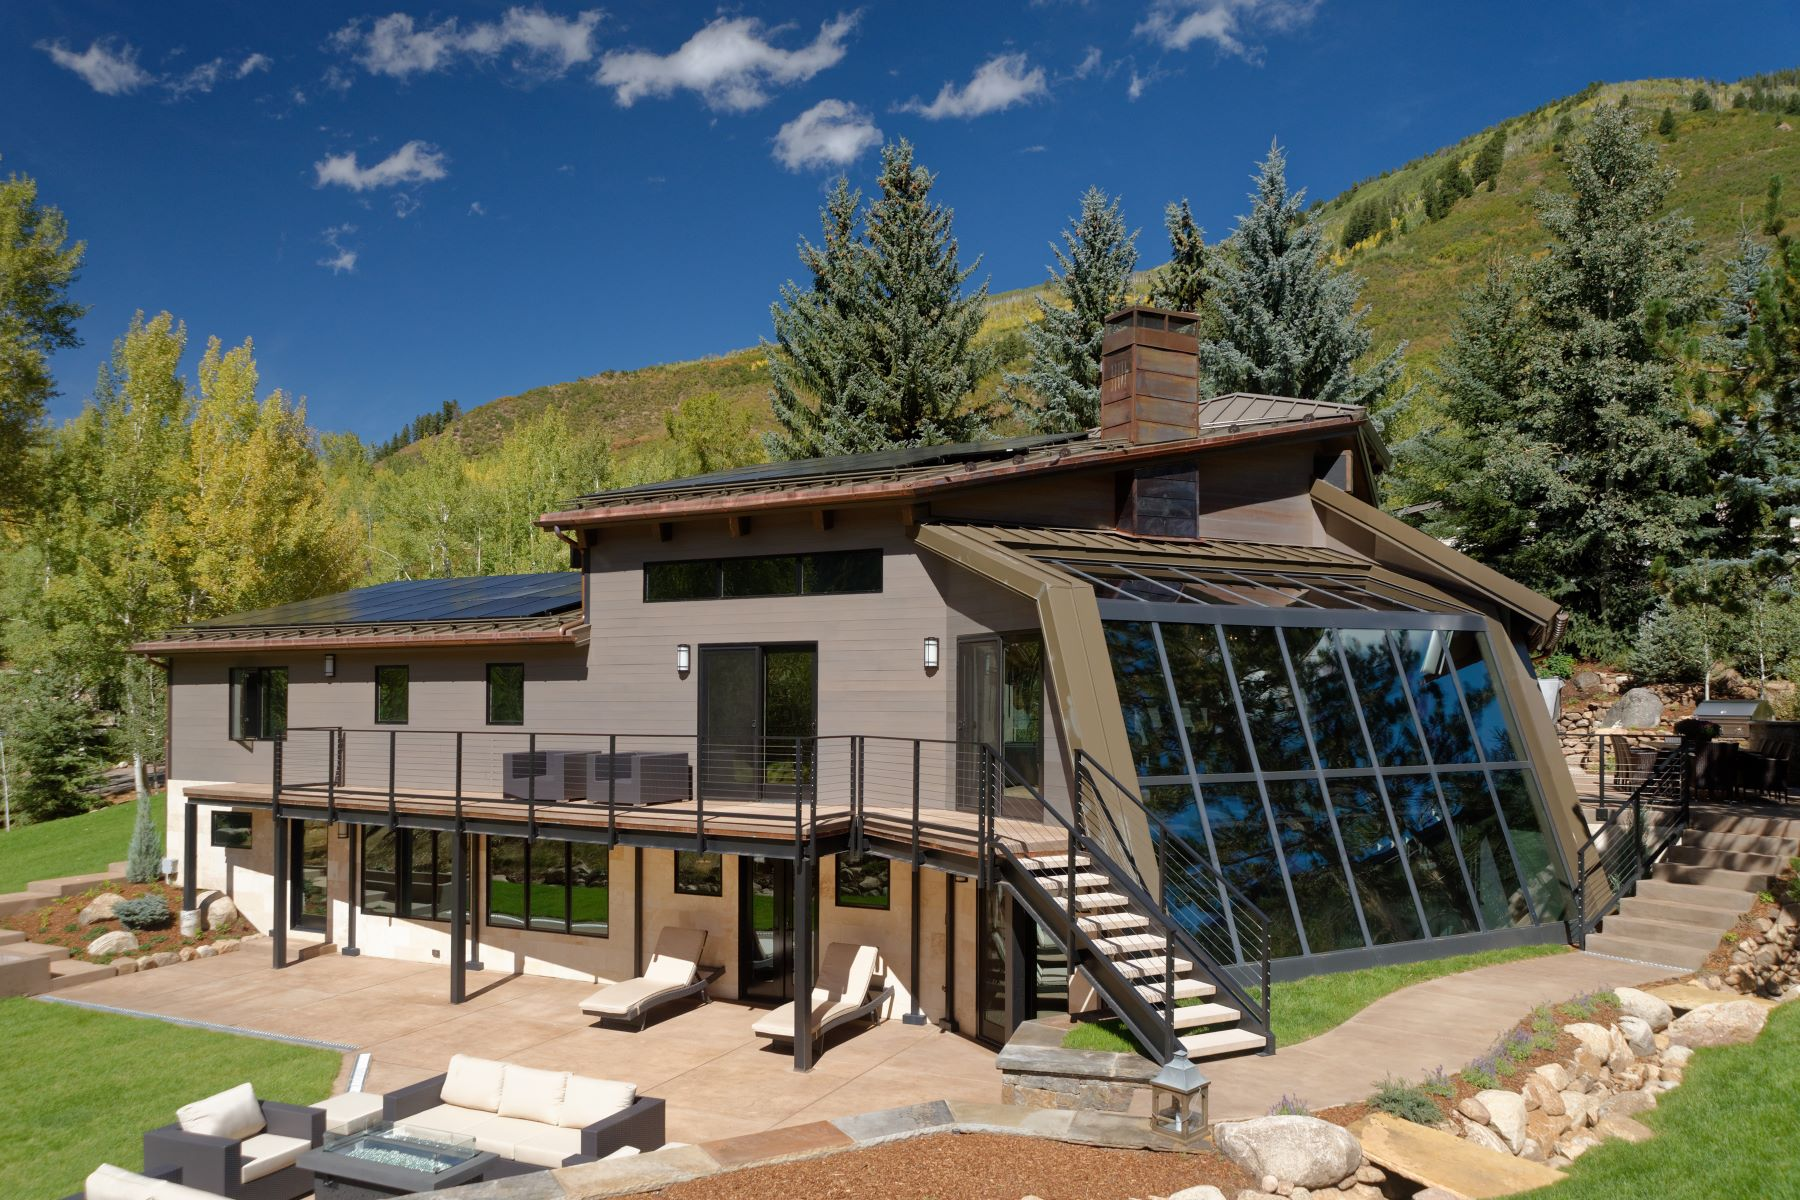 Single Family Home for Active at Exquisite Mountain Contemporary 39 Roaring Fork Drive Aspen, Colorado 81611 United States